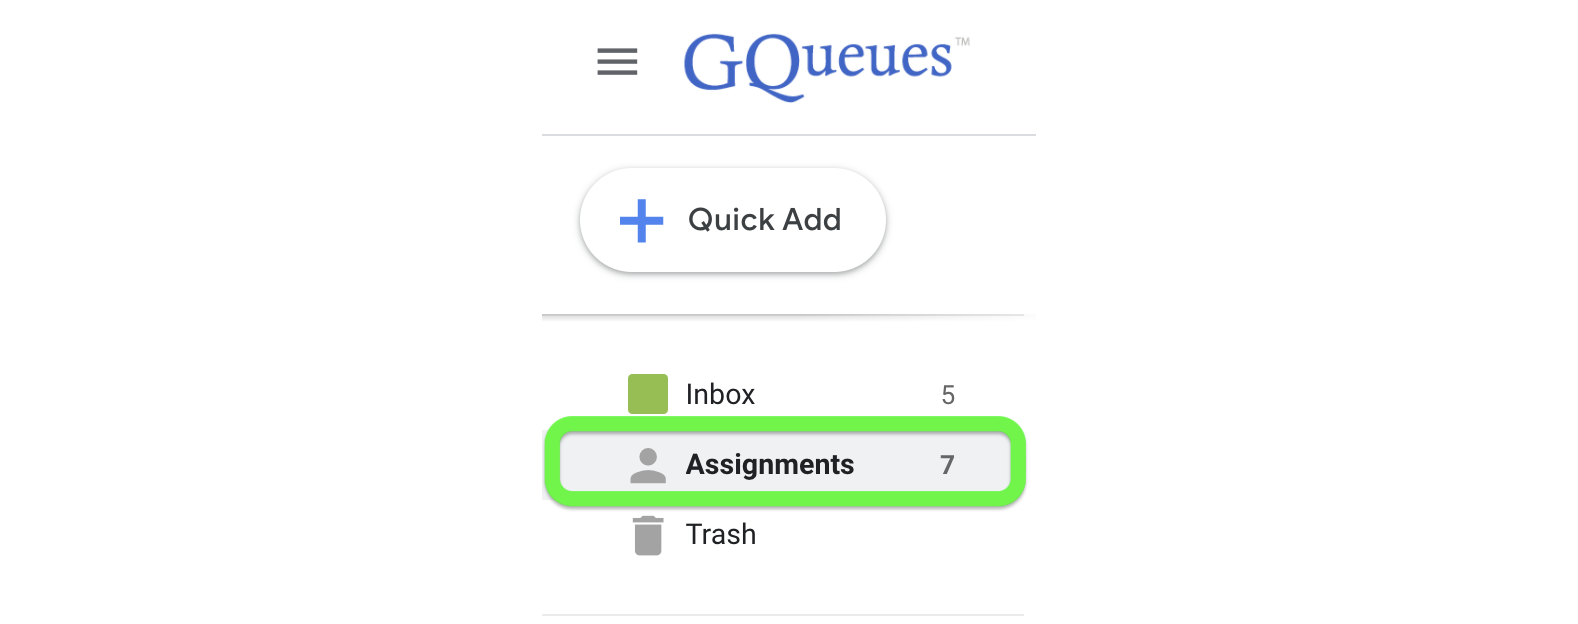 Assignments queue in lefthand panel of GQueues